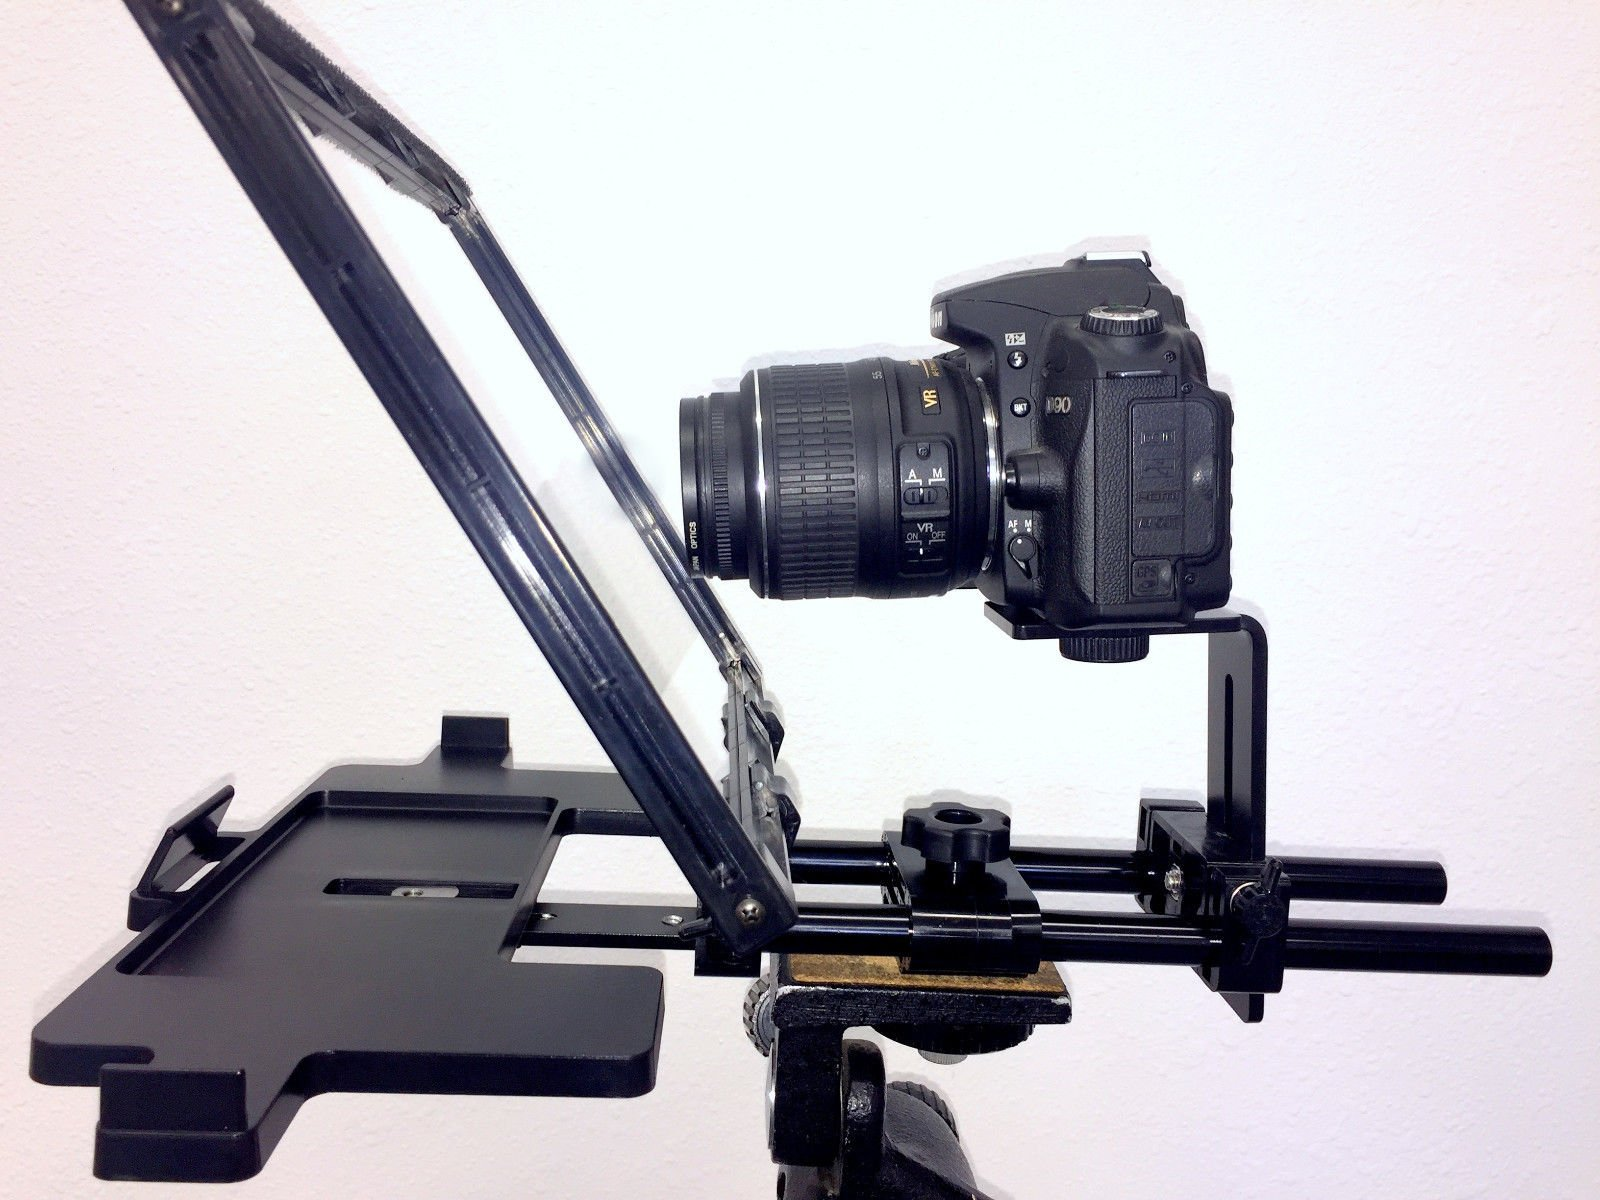 Teleprompter works with Ipad Android iPhone Tablet Prompter Beam Splitter Glass by Gogad